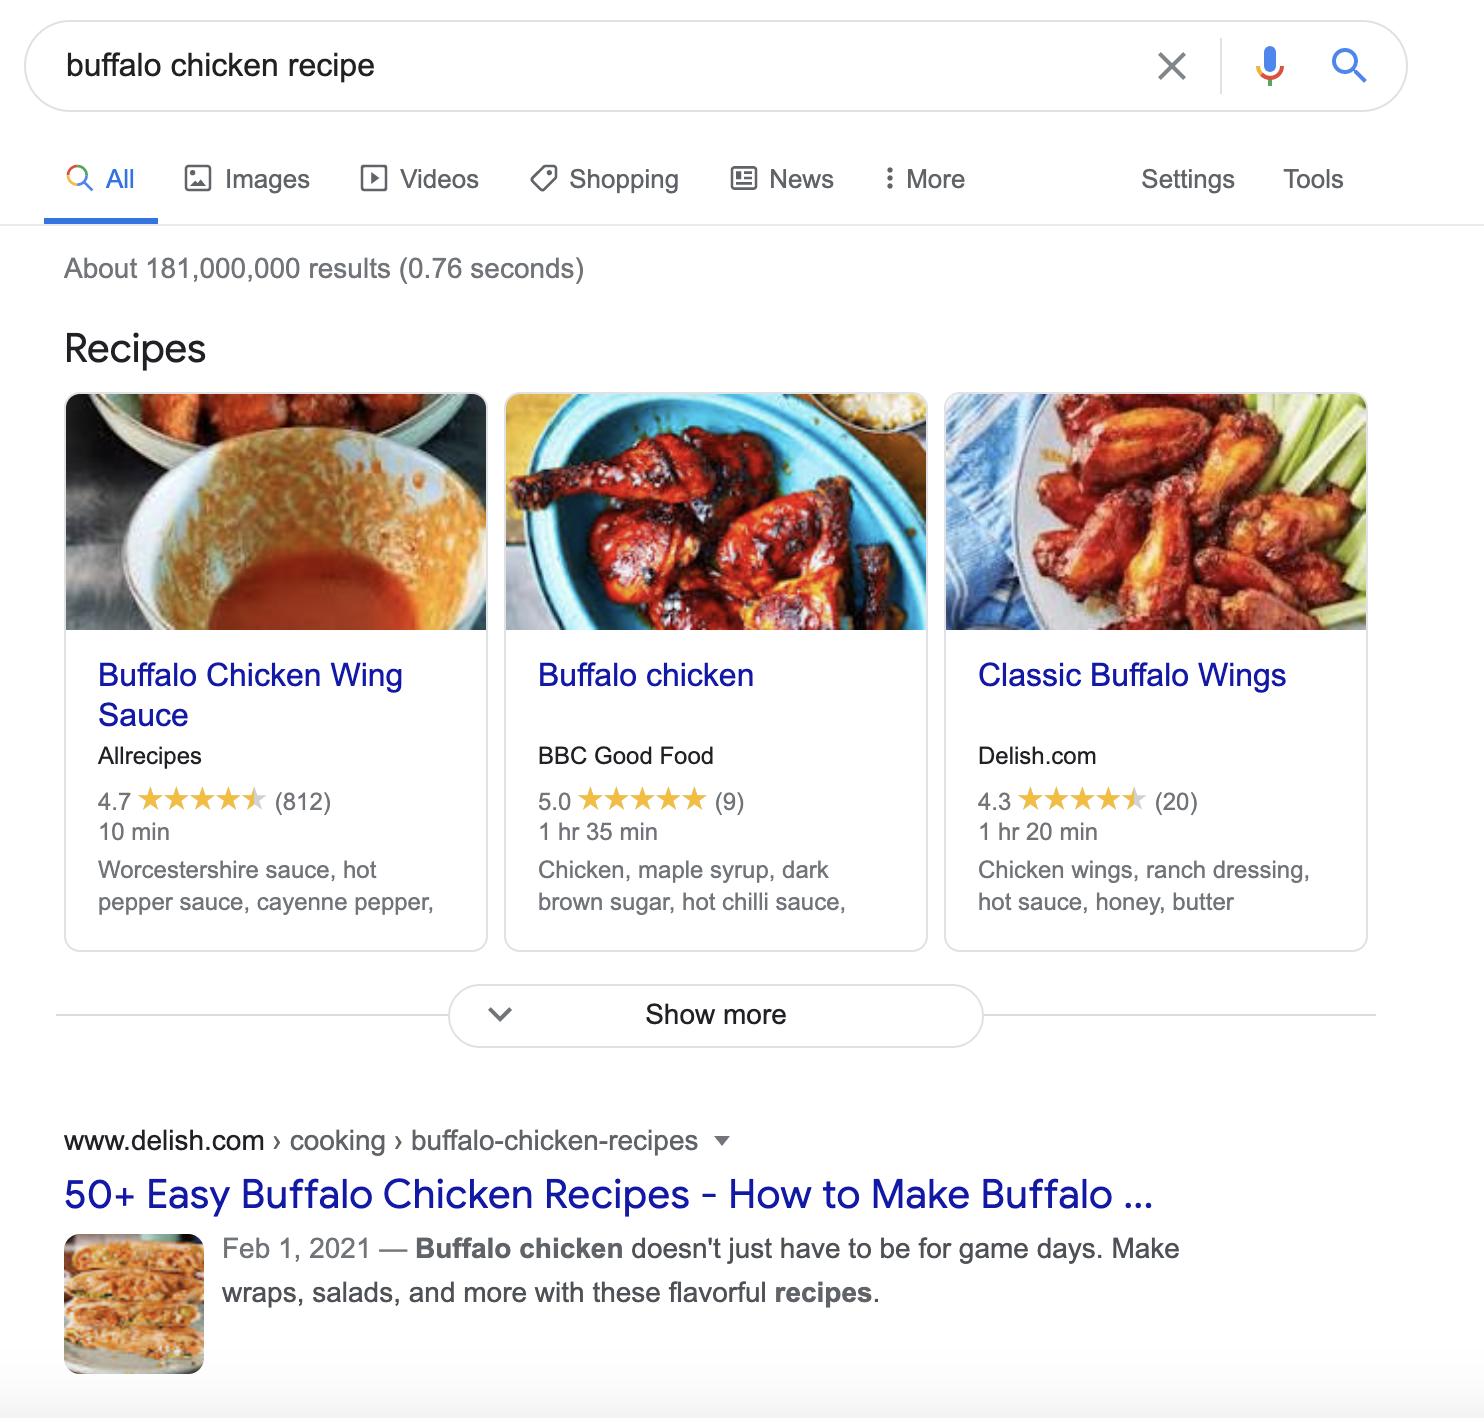 buffalo chicken recipe structured data